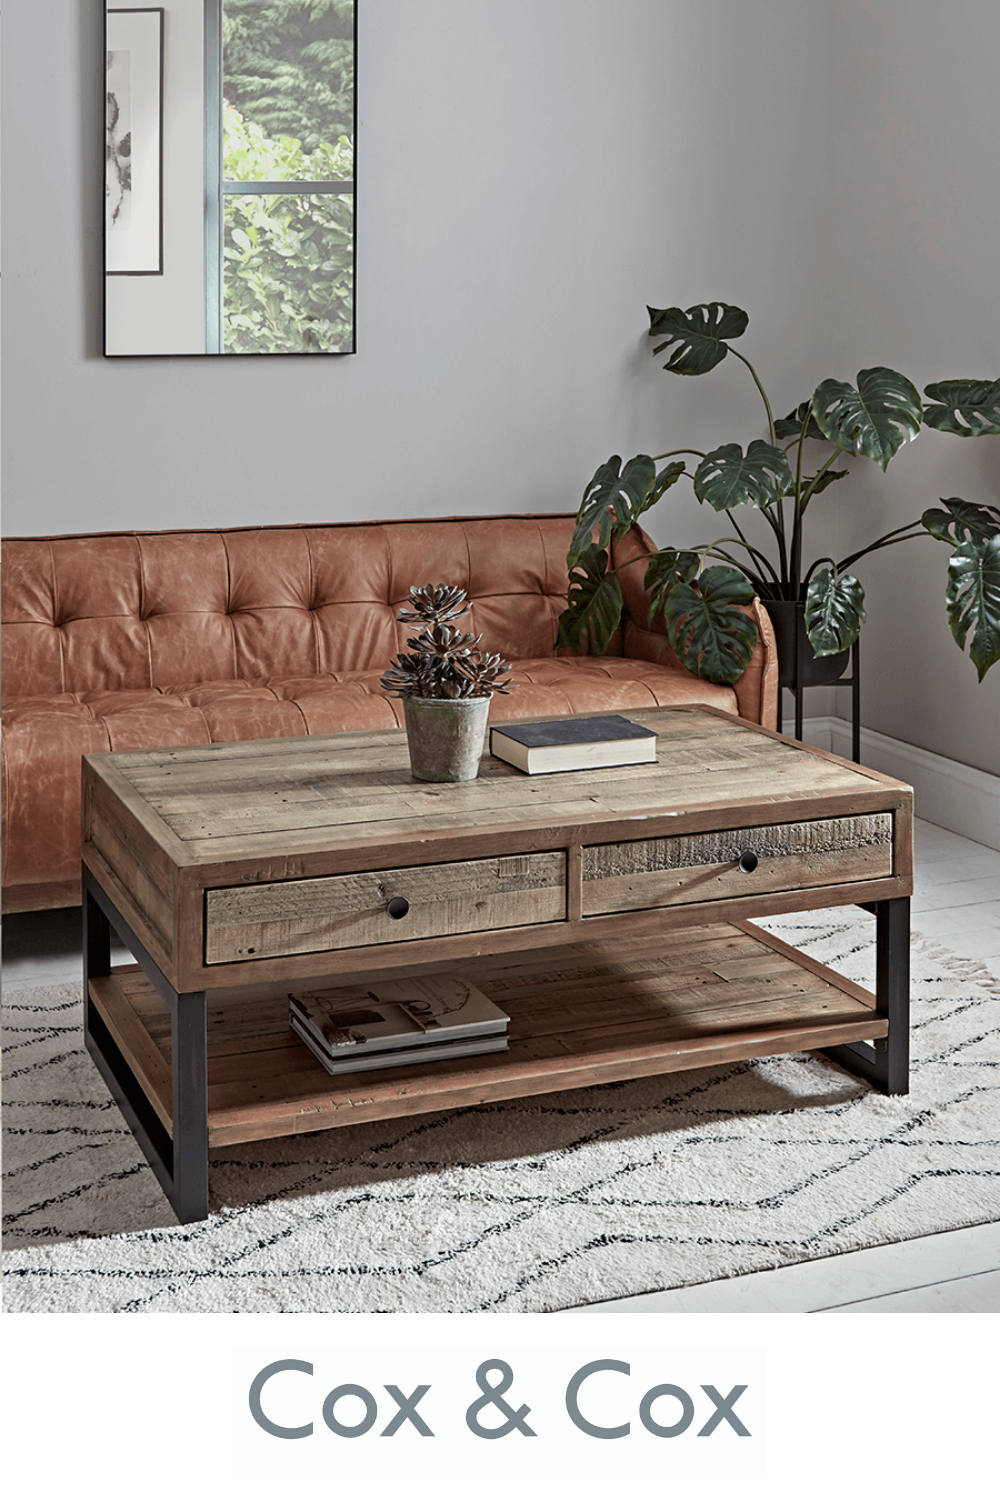 Loft Coffee Table Coffee Table Perfect Coffee Table Table [ 1500 x 1000 Pixel ]